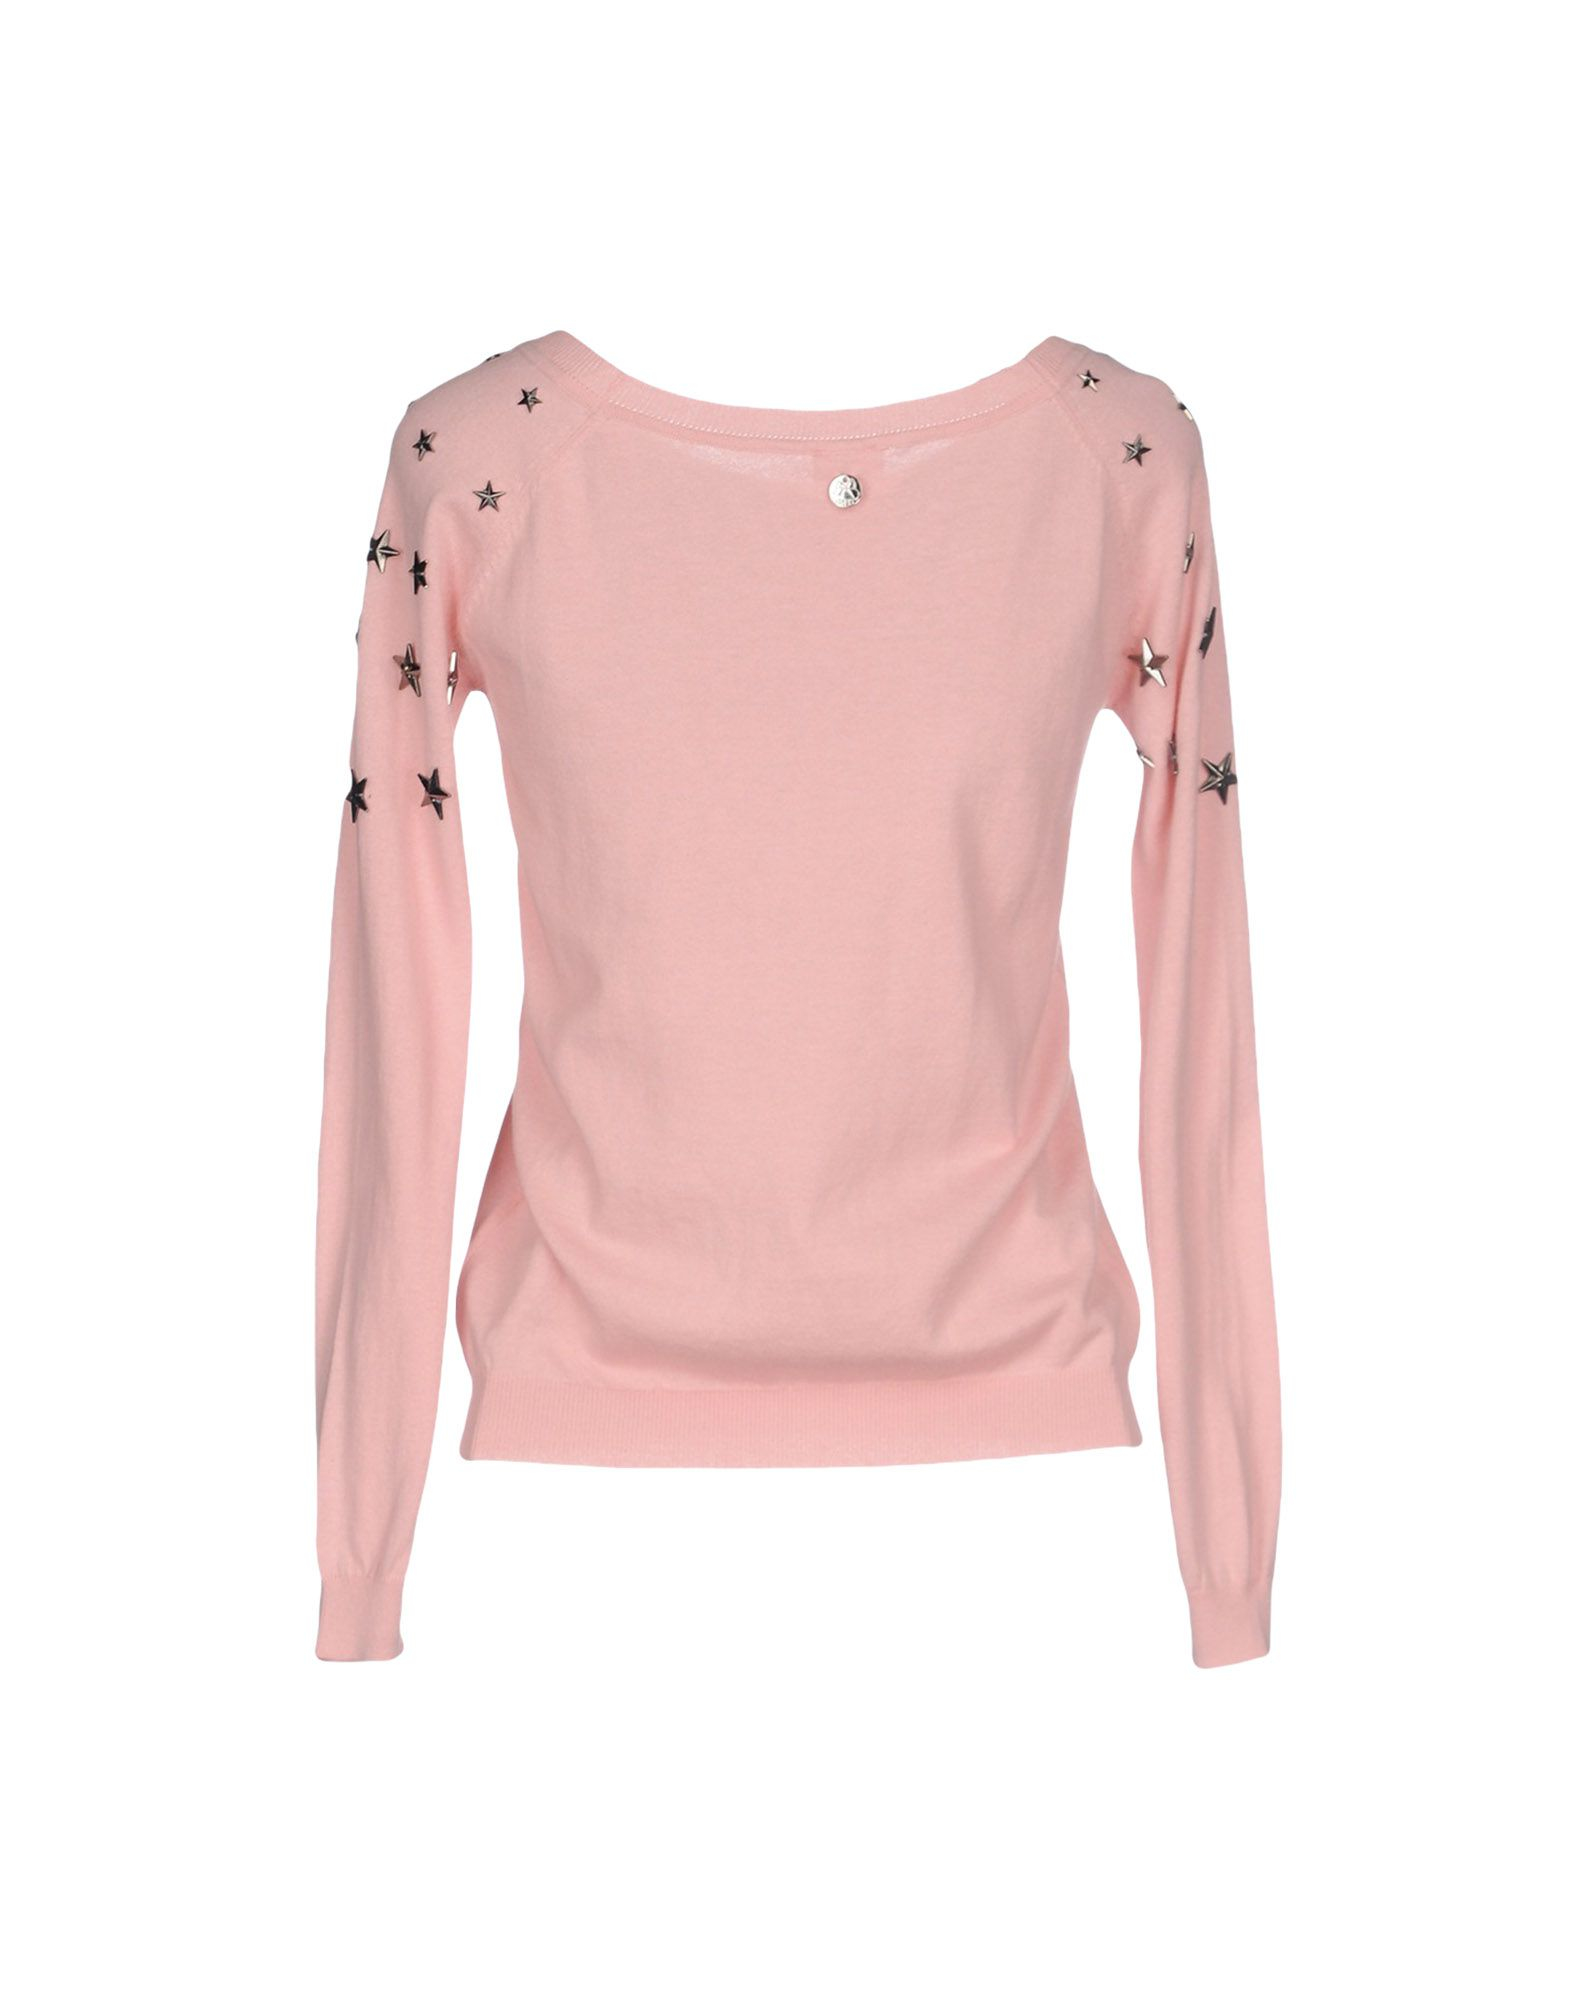 Scee by twin-set Jumper in Pink | Lyst